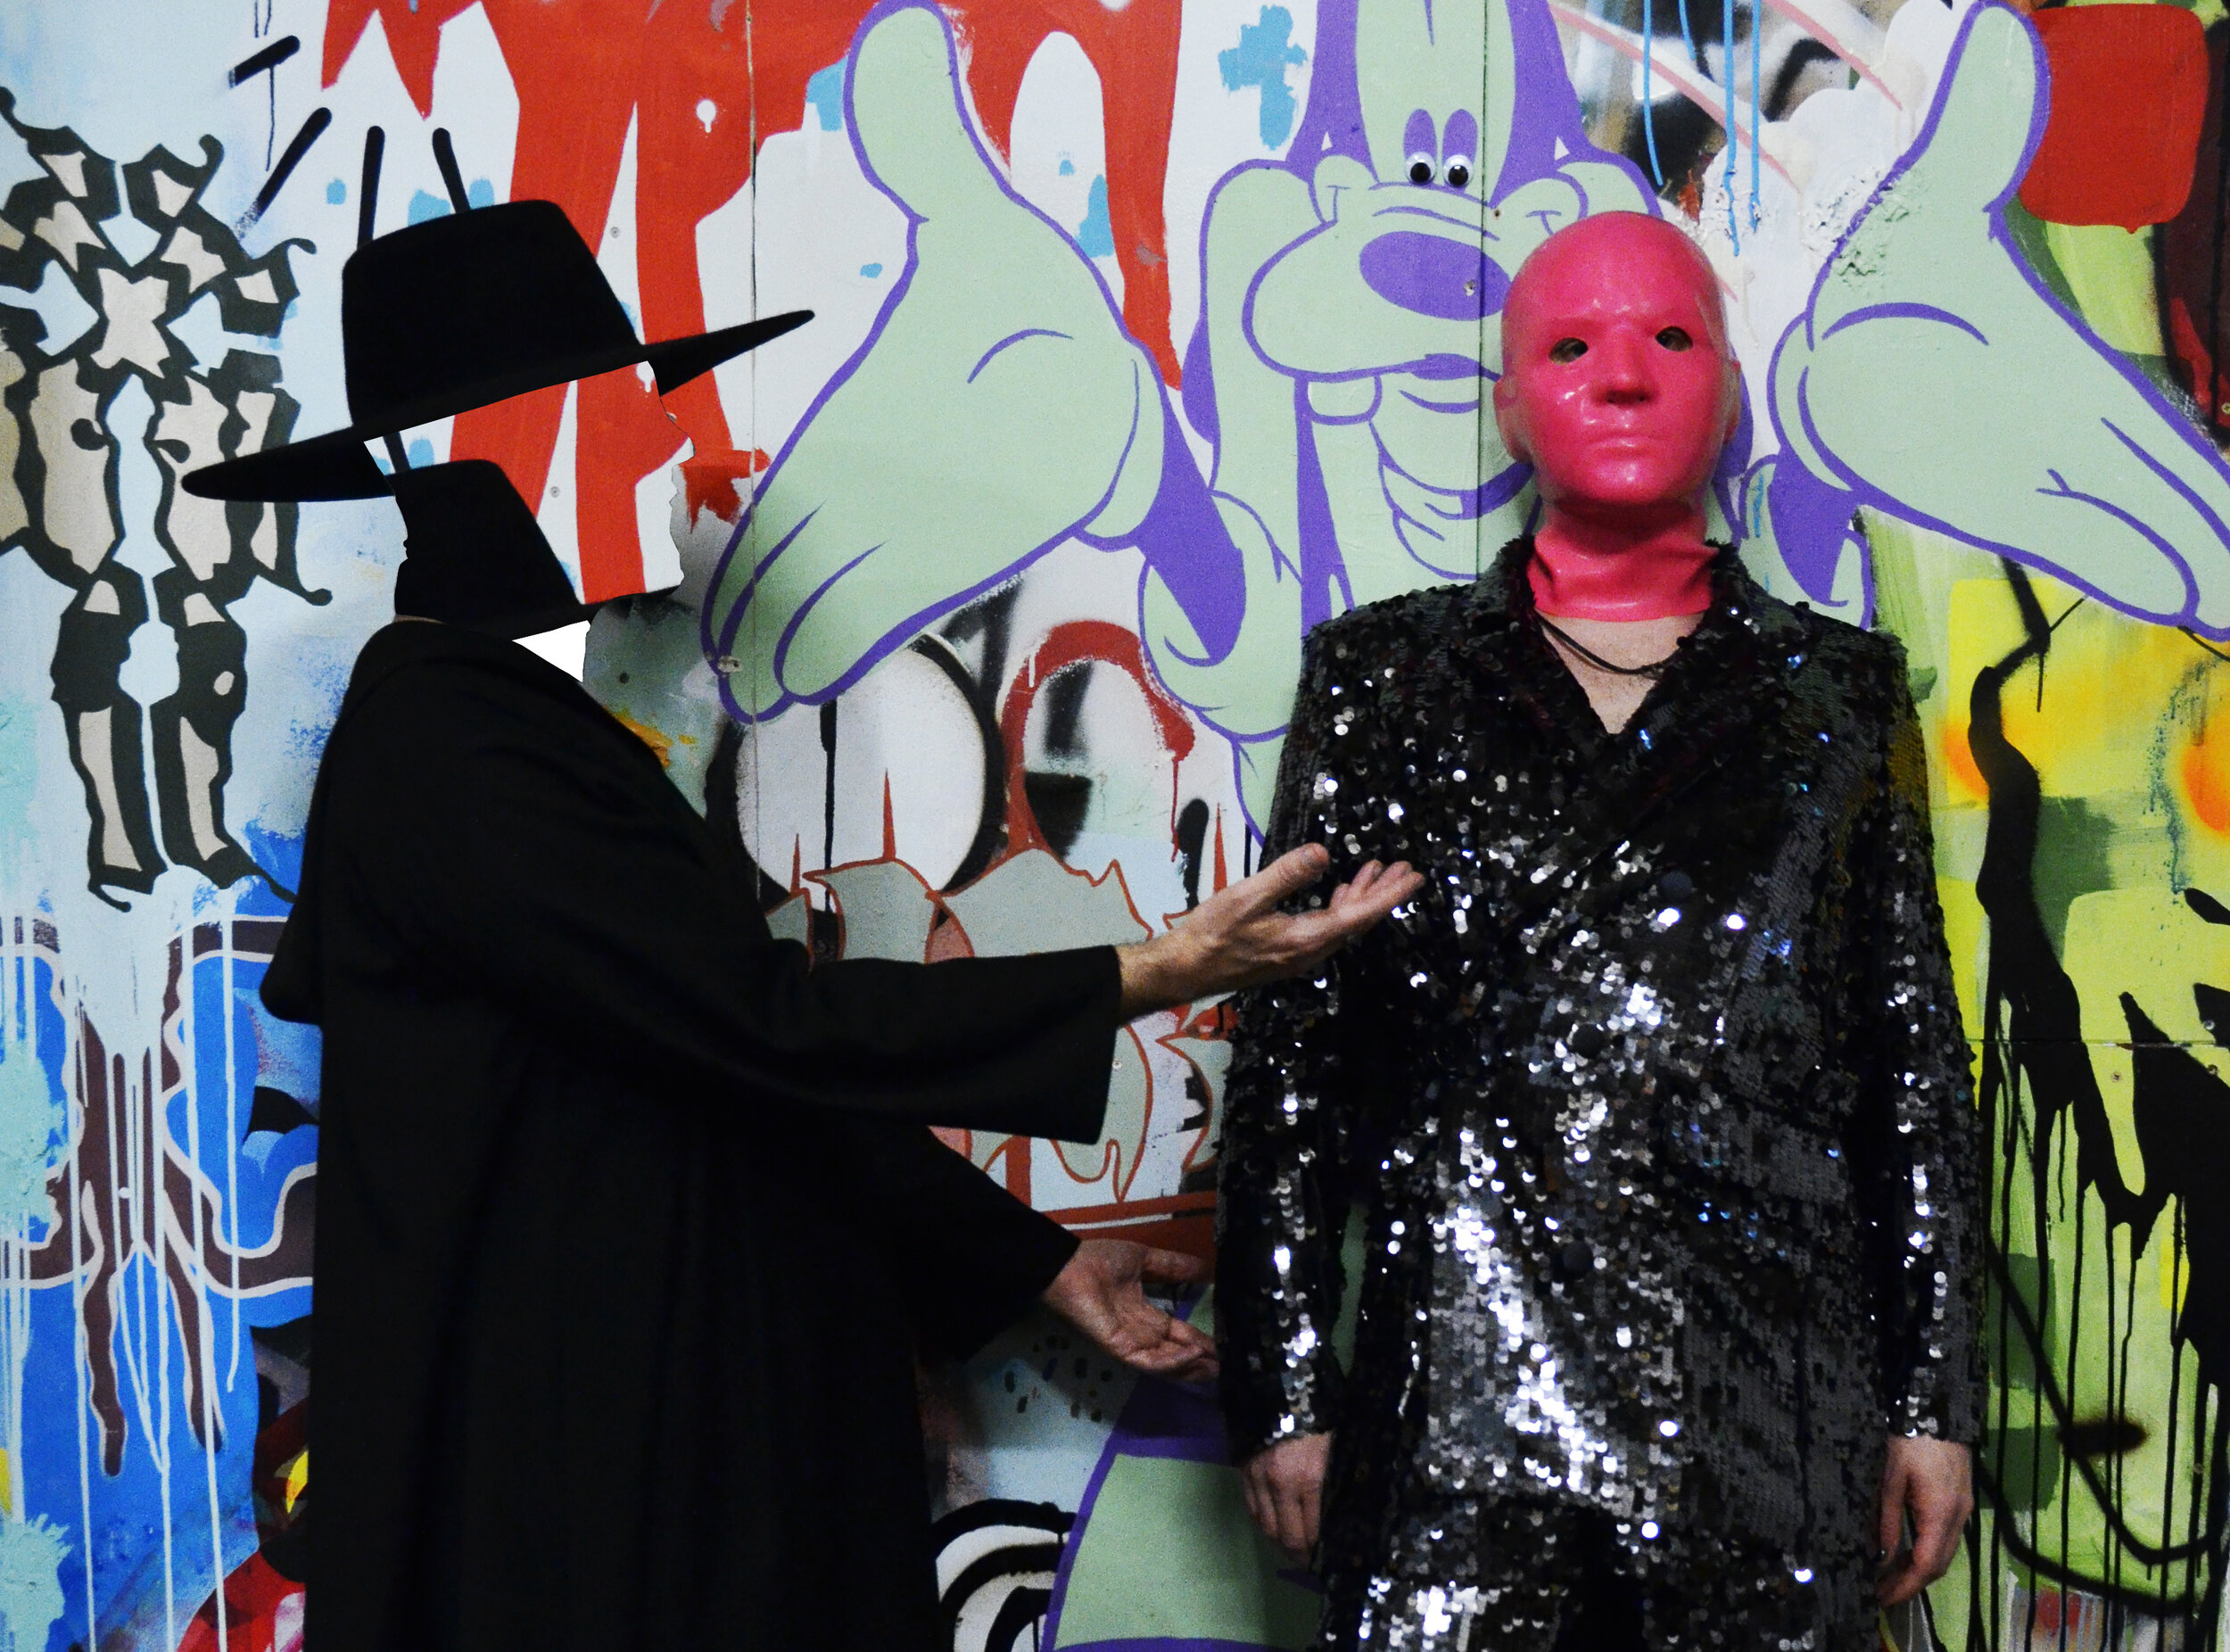 """- GIRL is an electronic music duo conjuring queer sounds from the heart of darkness and the city of light (Kaurna Country, Australia). It is both a creative and romantic partnership between Sweeney and Em. Their music floats between genres fusing pulsing electronic production with dark neoclassical inspired piano ballads. GIRL work as both a touring band and as creators of immersive sound-based performance works. GIRL have released a series of well-received singles over the last 2 years. Their first, Train/Water, was released both digitally and as a limited edition, sold out 7"""" record. Train reached #66 on ThreeD Radio's top 100 countdown in 2017 and Water received widespread national radio play including on Triple J and Double J. In late 2017 the duo embarked on their first National tour of Australia which included shows in Sydney, Melbourne, Canberra, Adelaide, Brisbane and Nimbin and featured support slots from such artists as Shoeb Ahmad (Tangents) and Marcus Whale (Collarbones/Kwang Chai). Their 5th single War reached #9 on the AMRAP Airit Charts. In 2019, alongside recording and touring, GIRL will be releasing their debut album 'Masc'."""